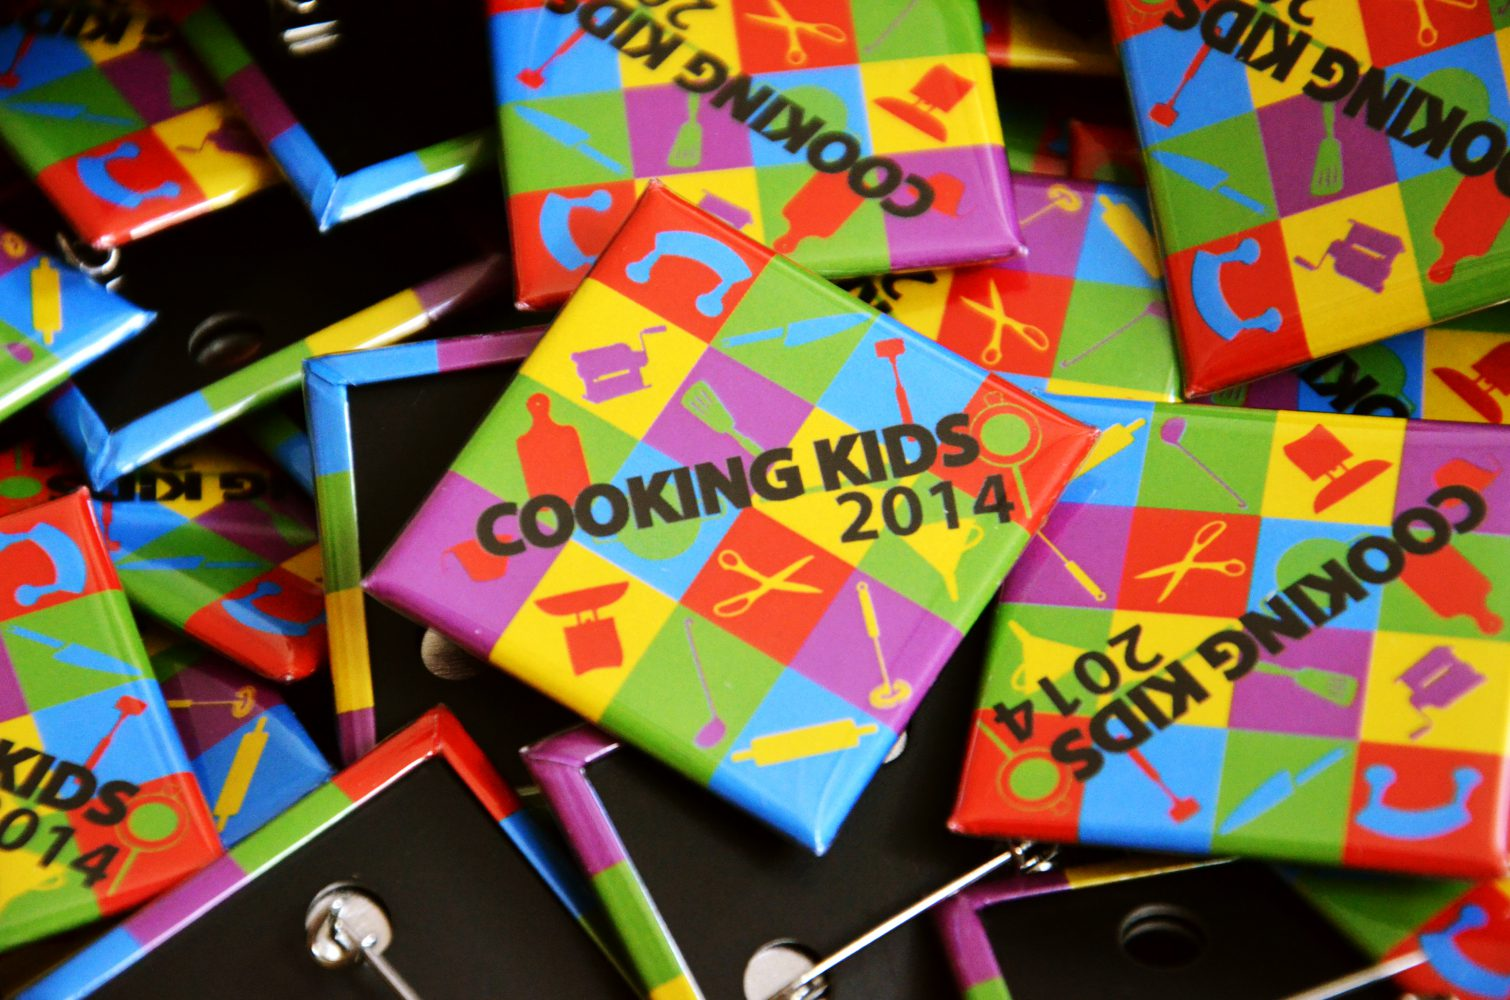 cooking kids badges